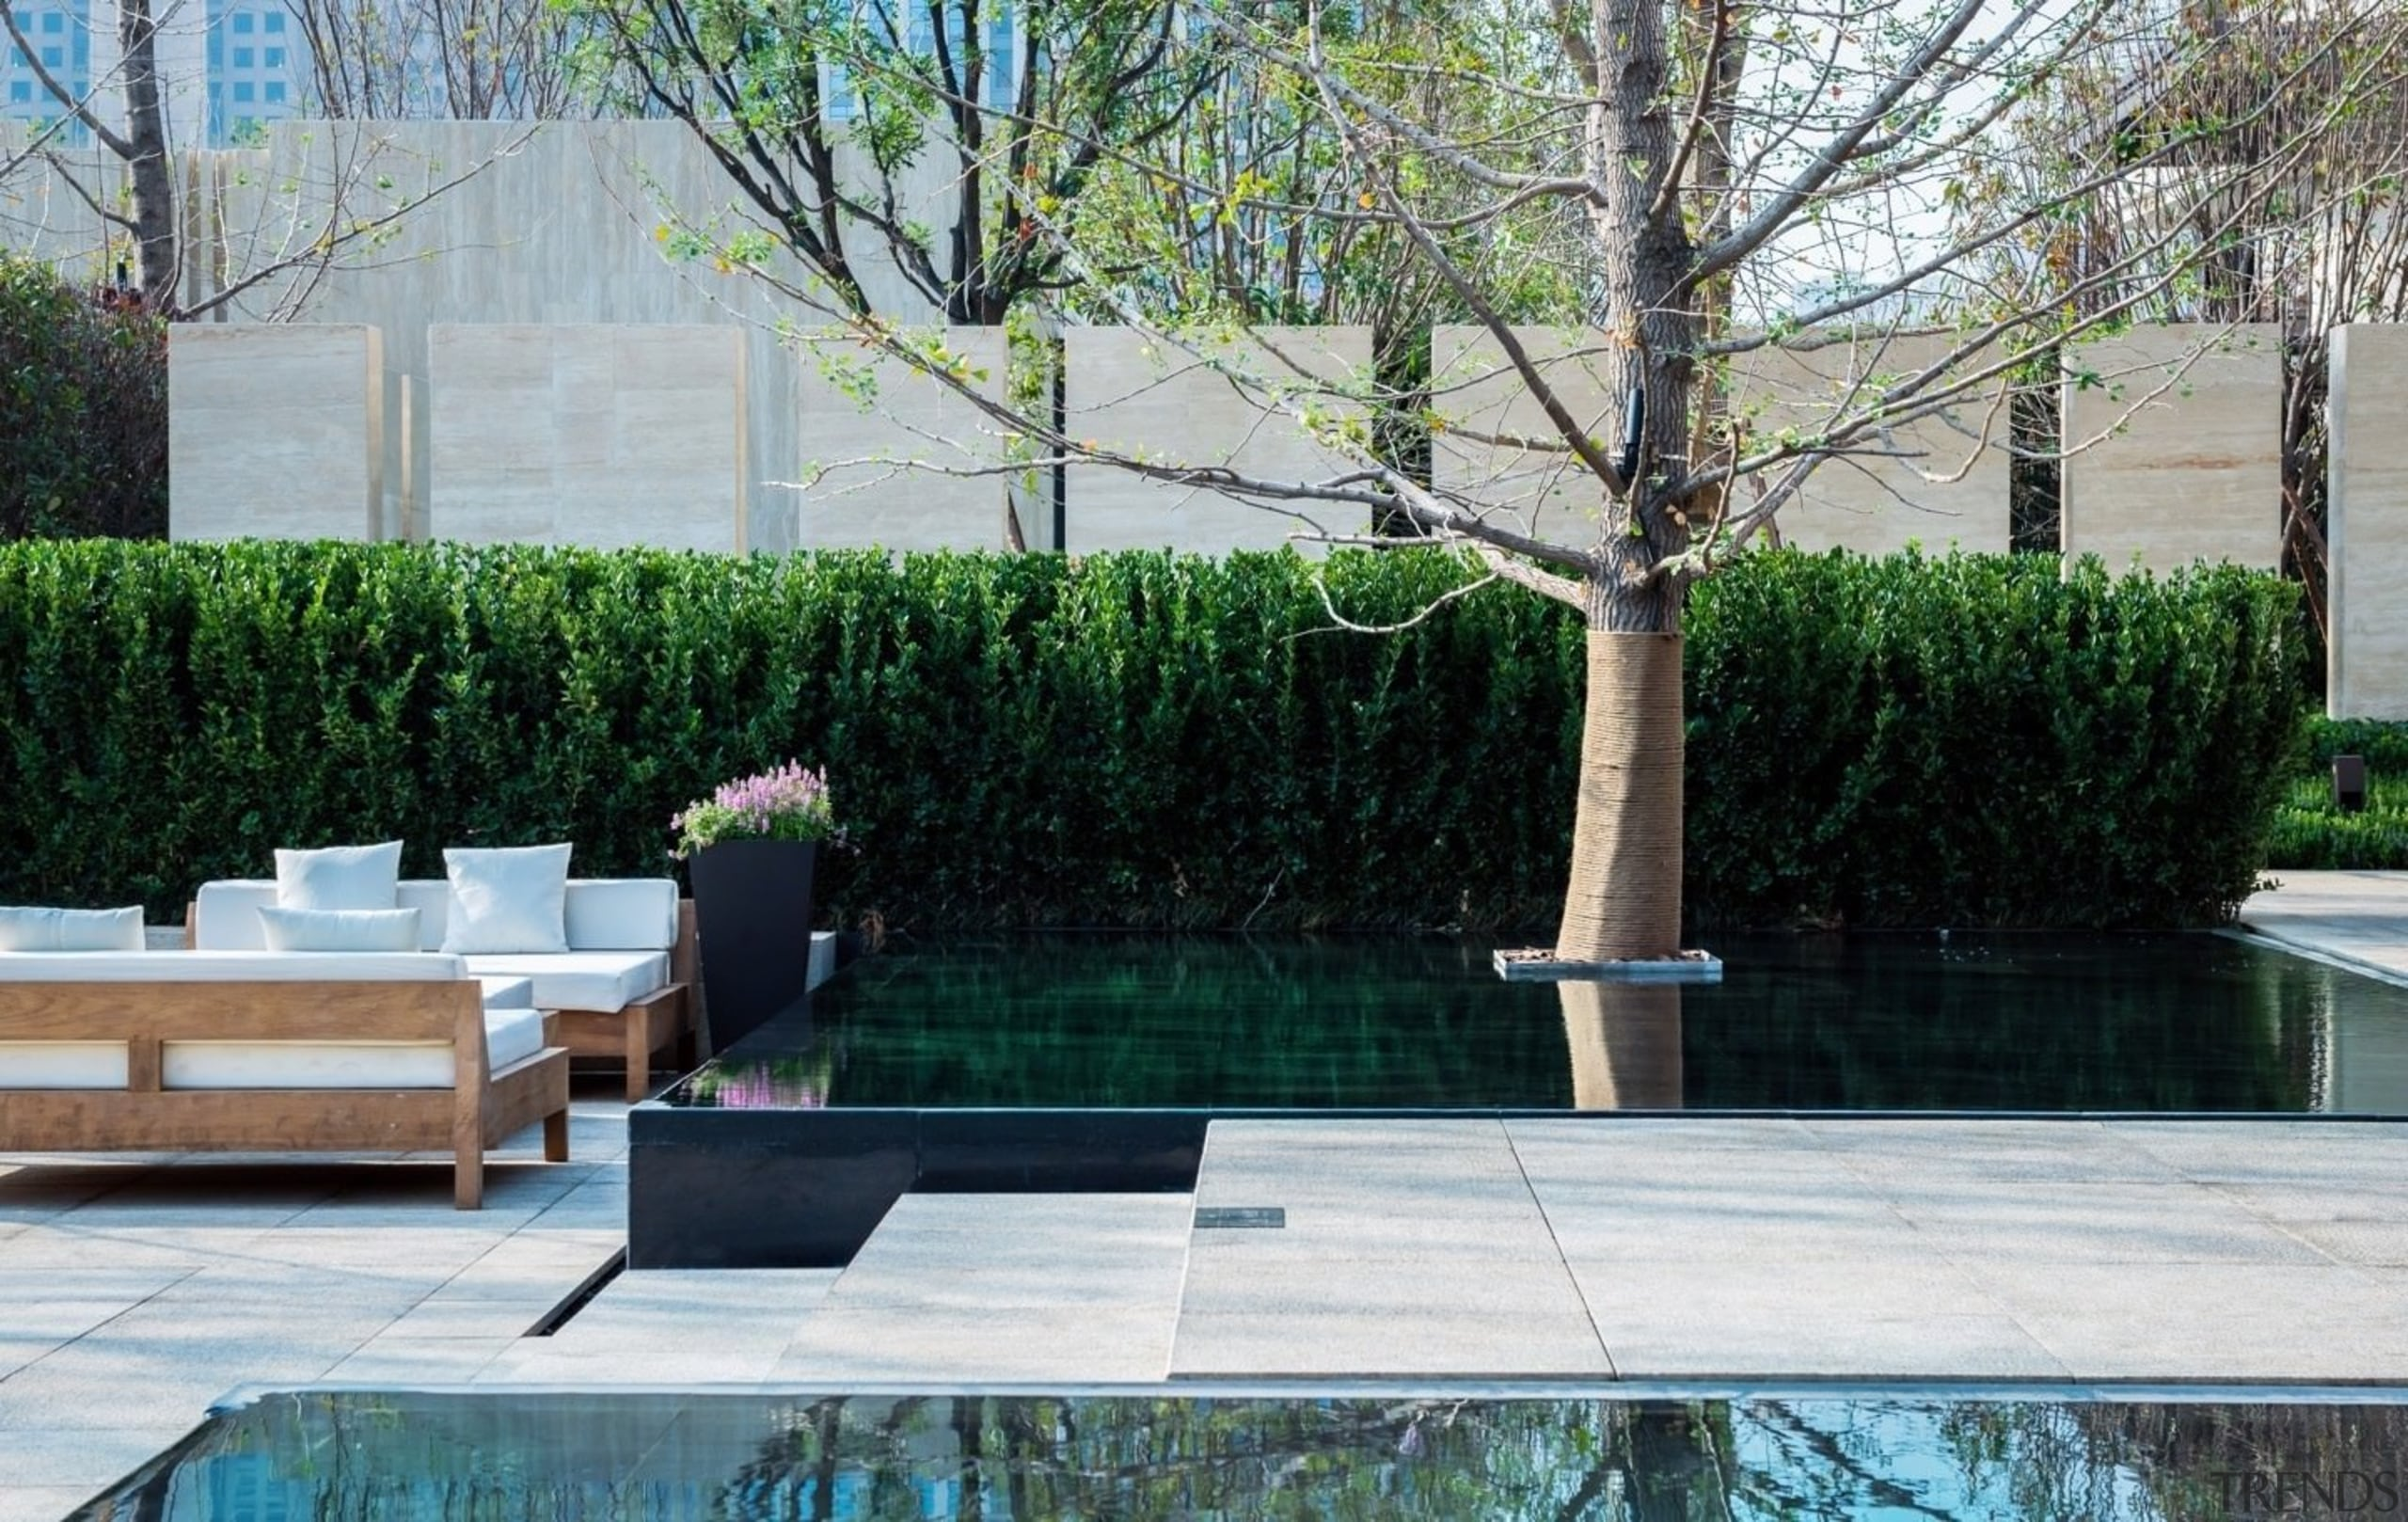 Vanke Park Mansion 'True Love' – FLOscape Landscape backyard, courtyard, garden, grass, landscaping, outdoor furniture, outdoor structure, patio, plant, property, shrub, tree, walkway, wall, yard, gray